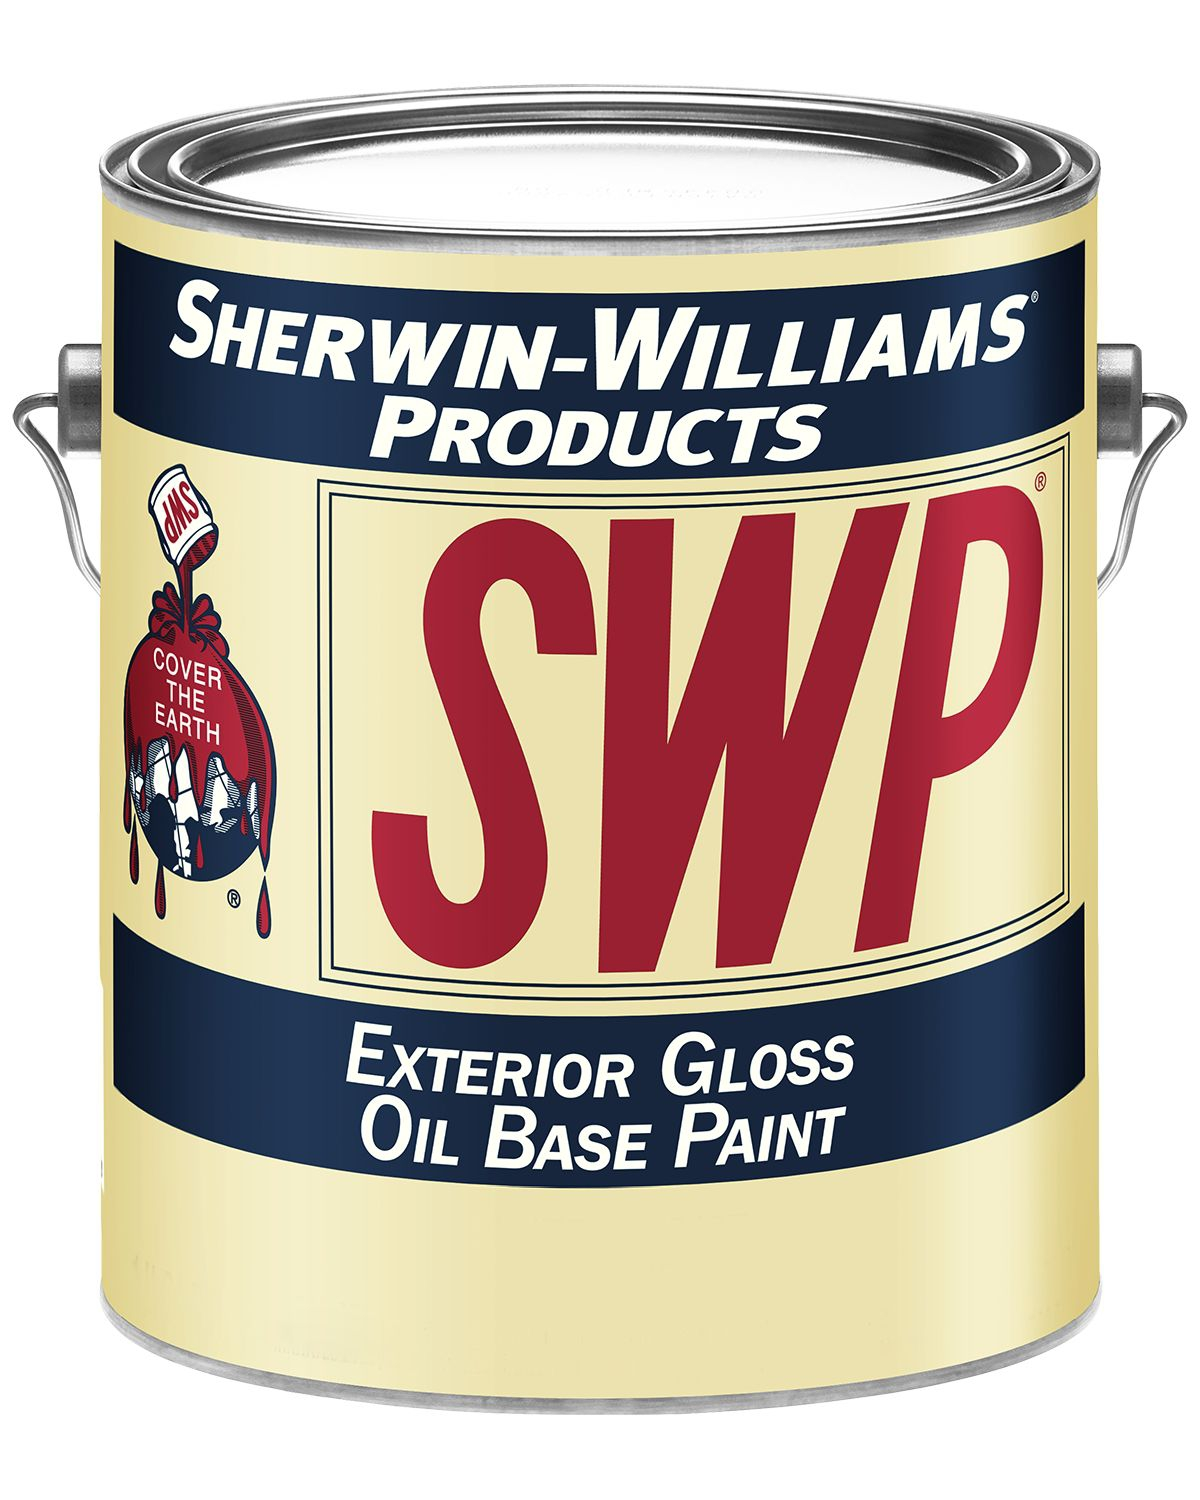 Swp Exterior Oil Based Paint Sherwin Williams